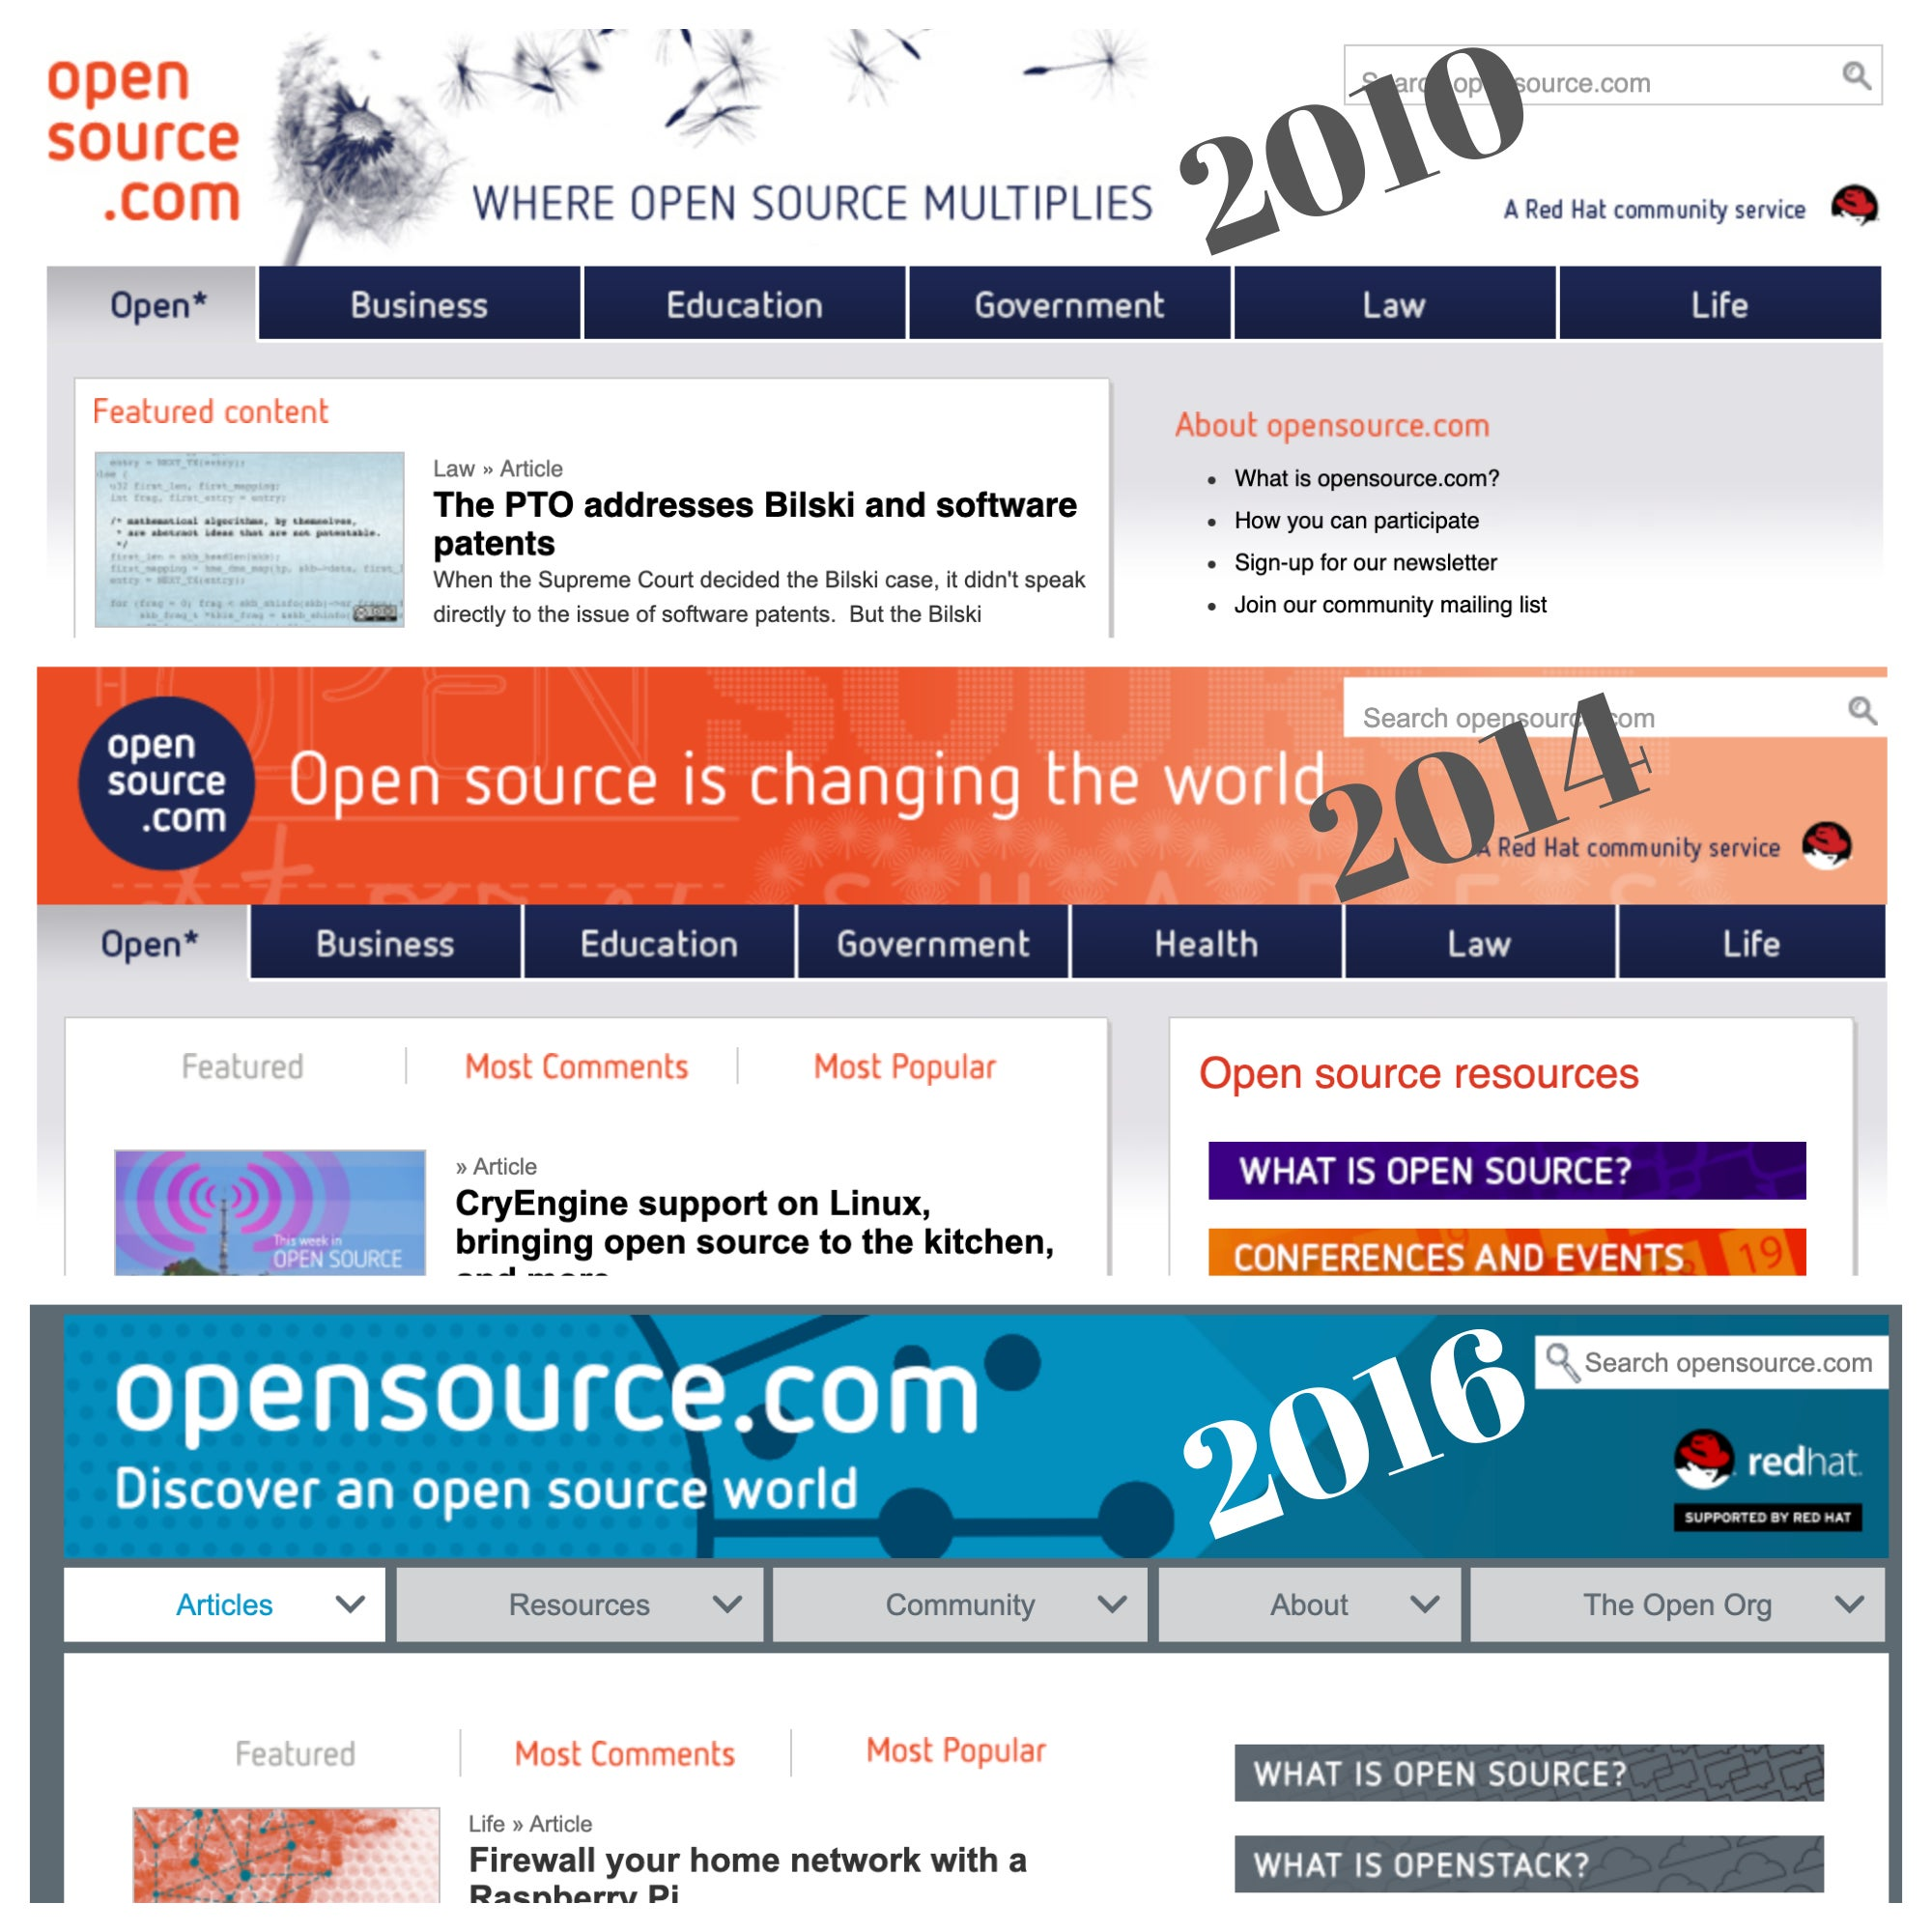 Snapshots of the homepage through the decade